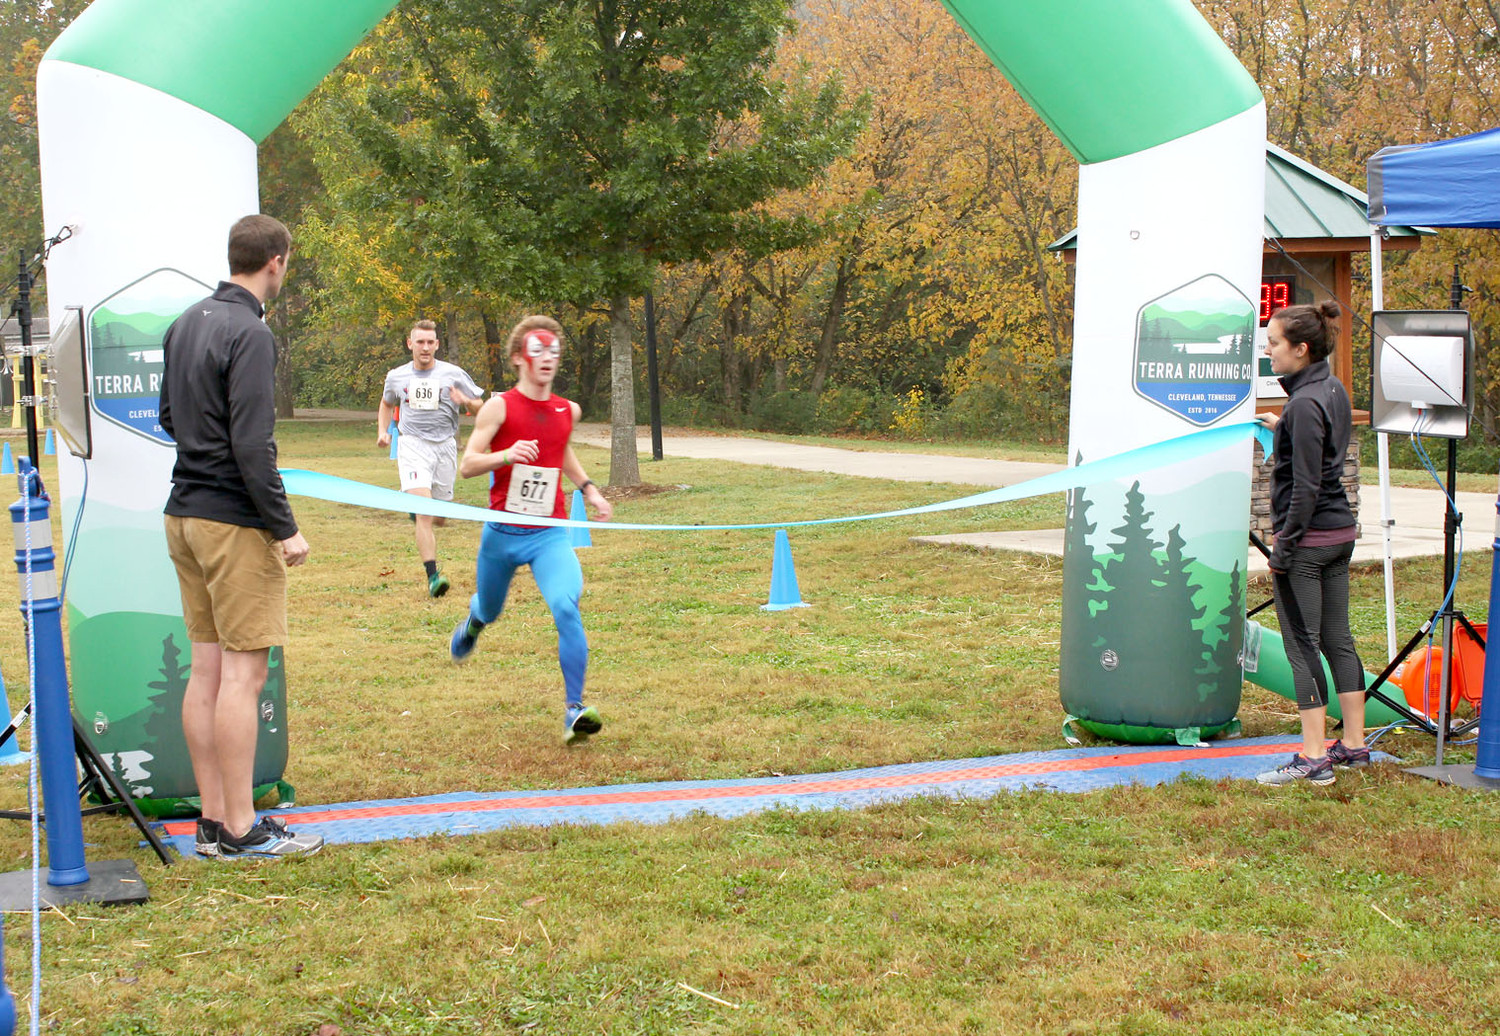 LUCAS FINNELL was the first-place finisher in the CASA Superhero run.